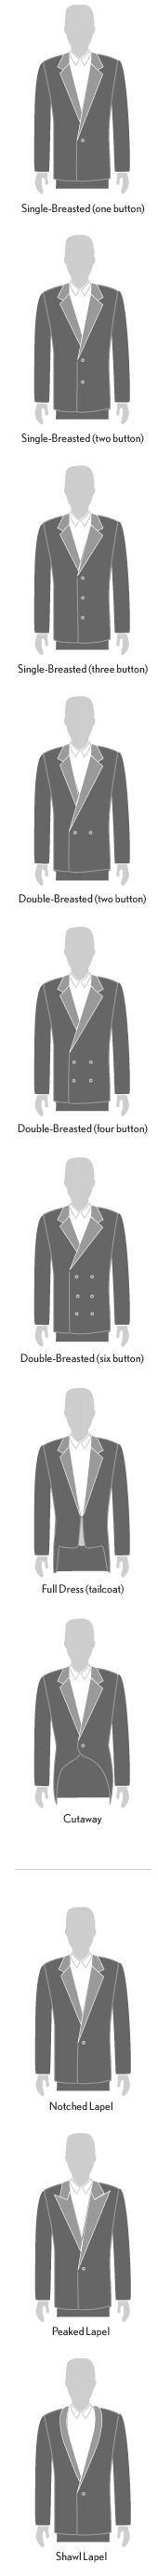 #Grooms get schooled in the lesson of the  wedding tuxedo with this style glossary.